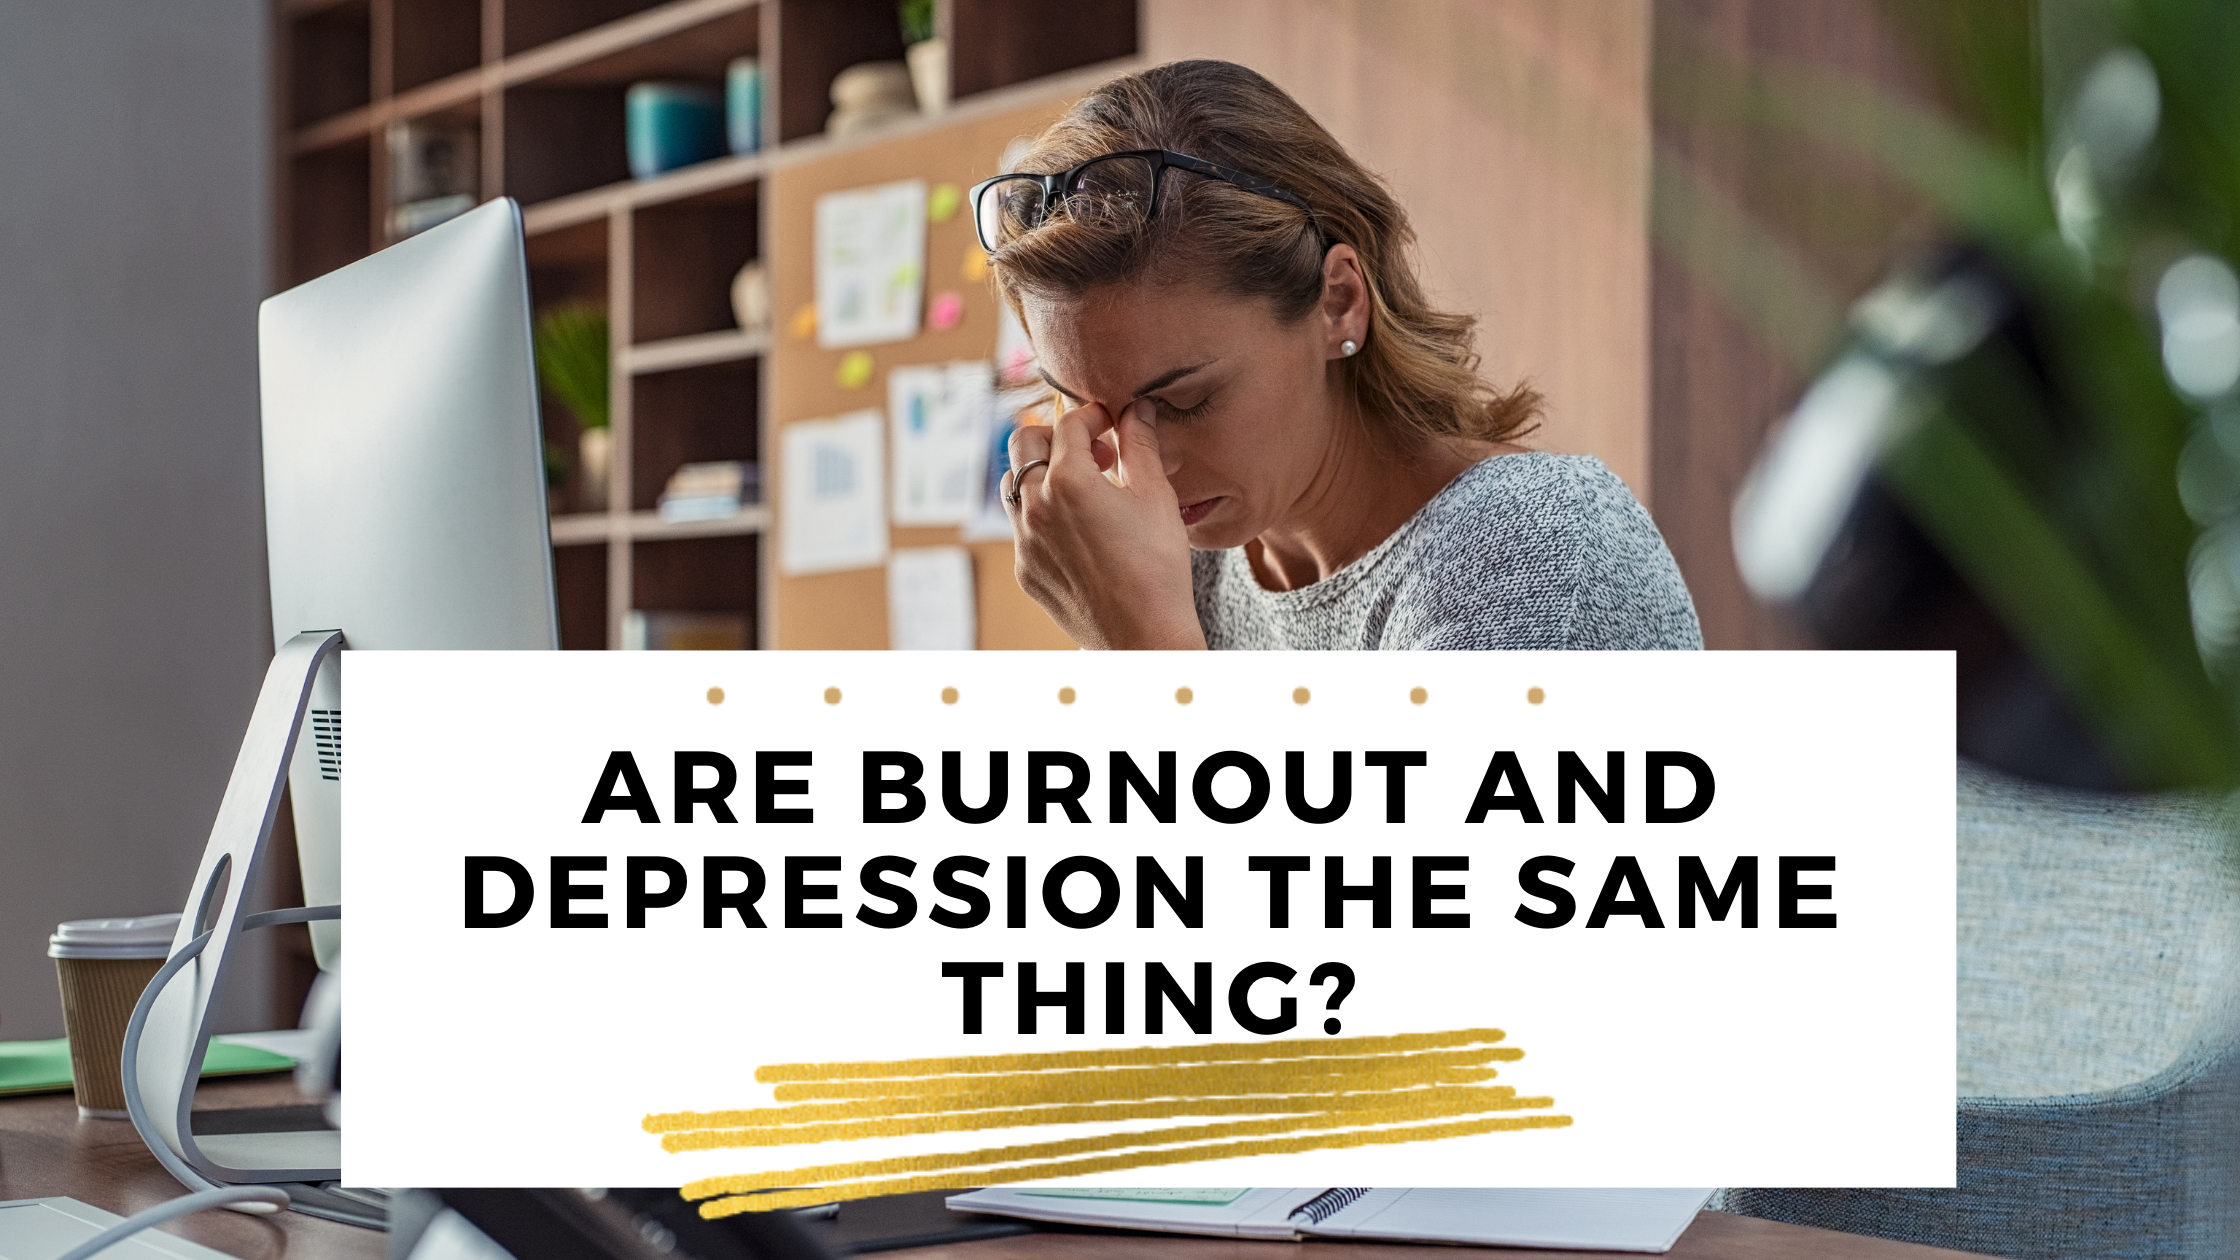 Are burnout and depression the same thing